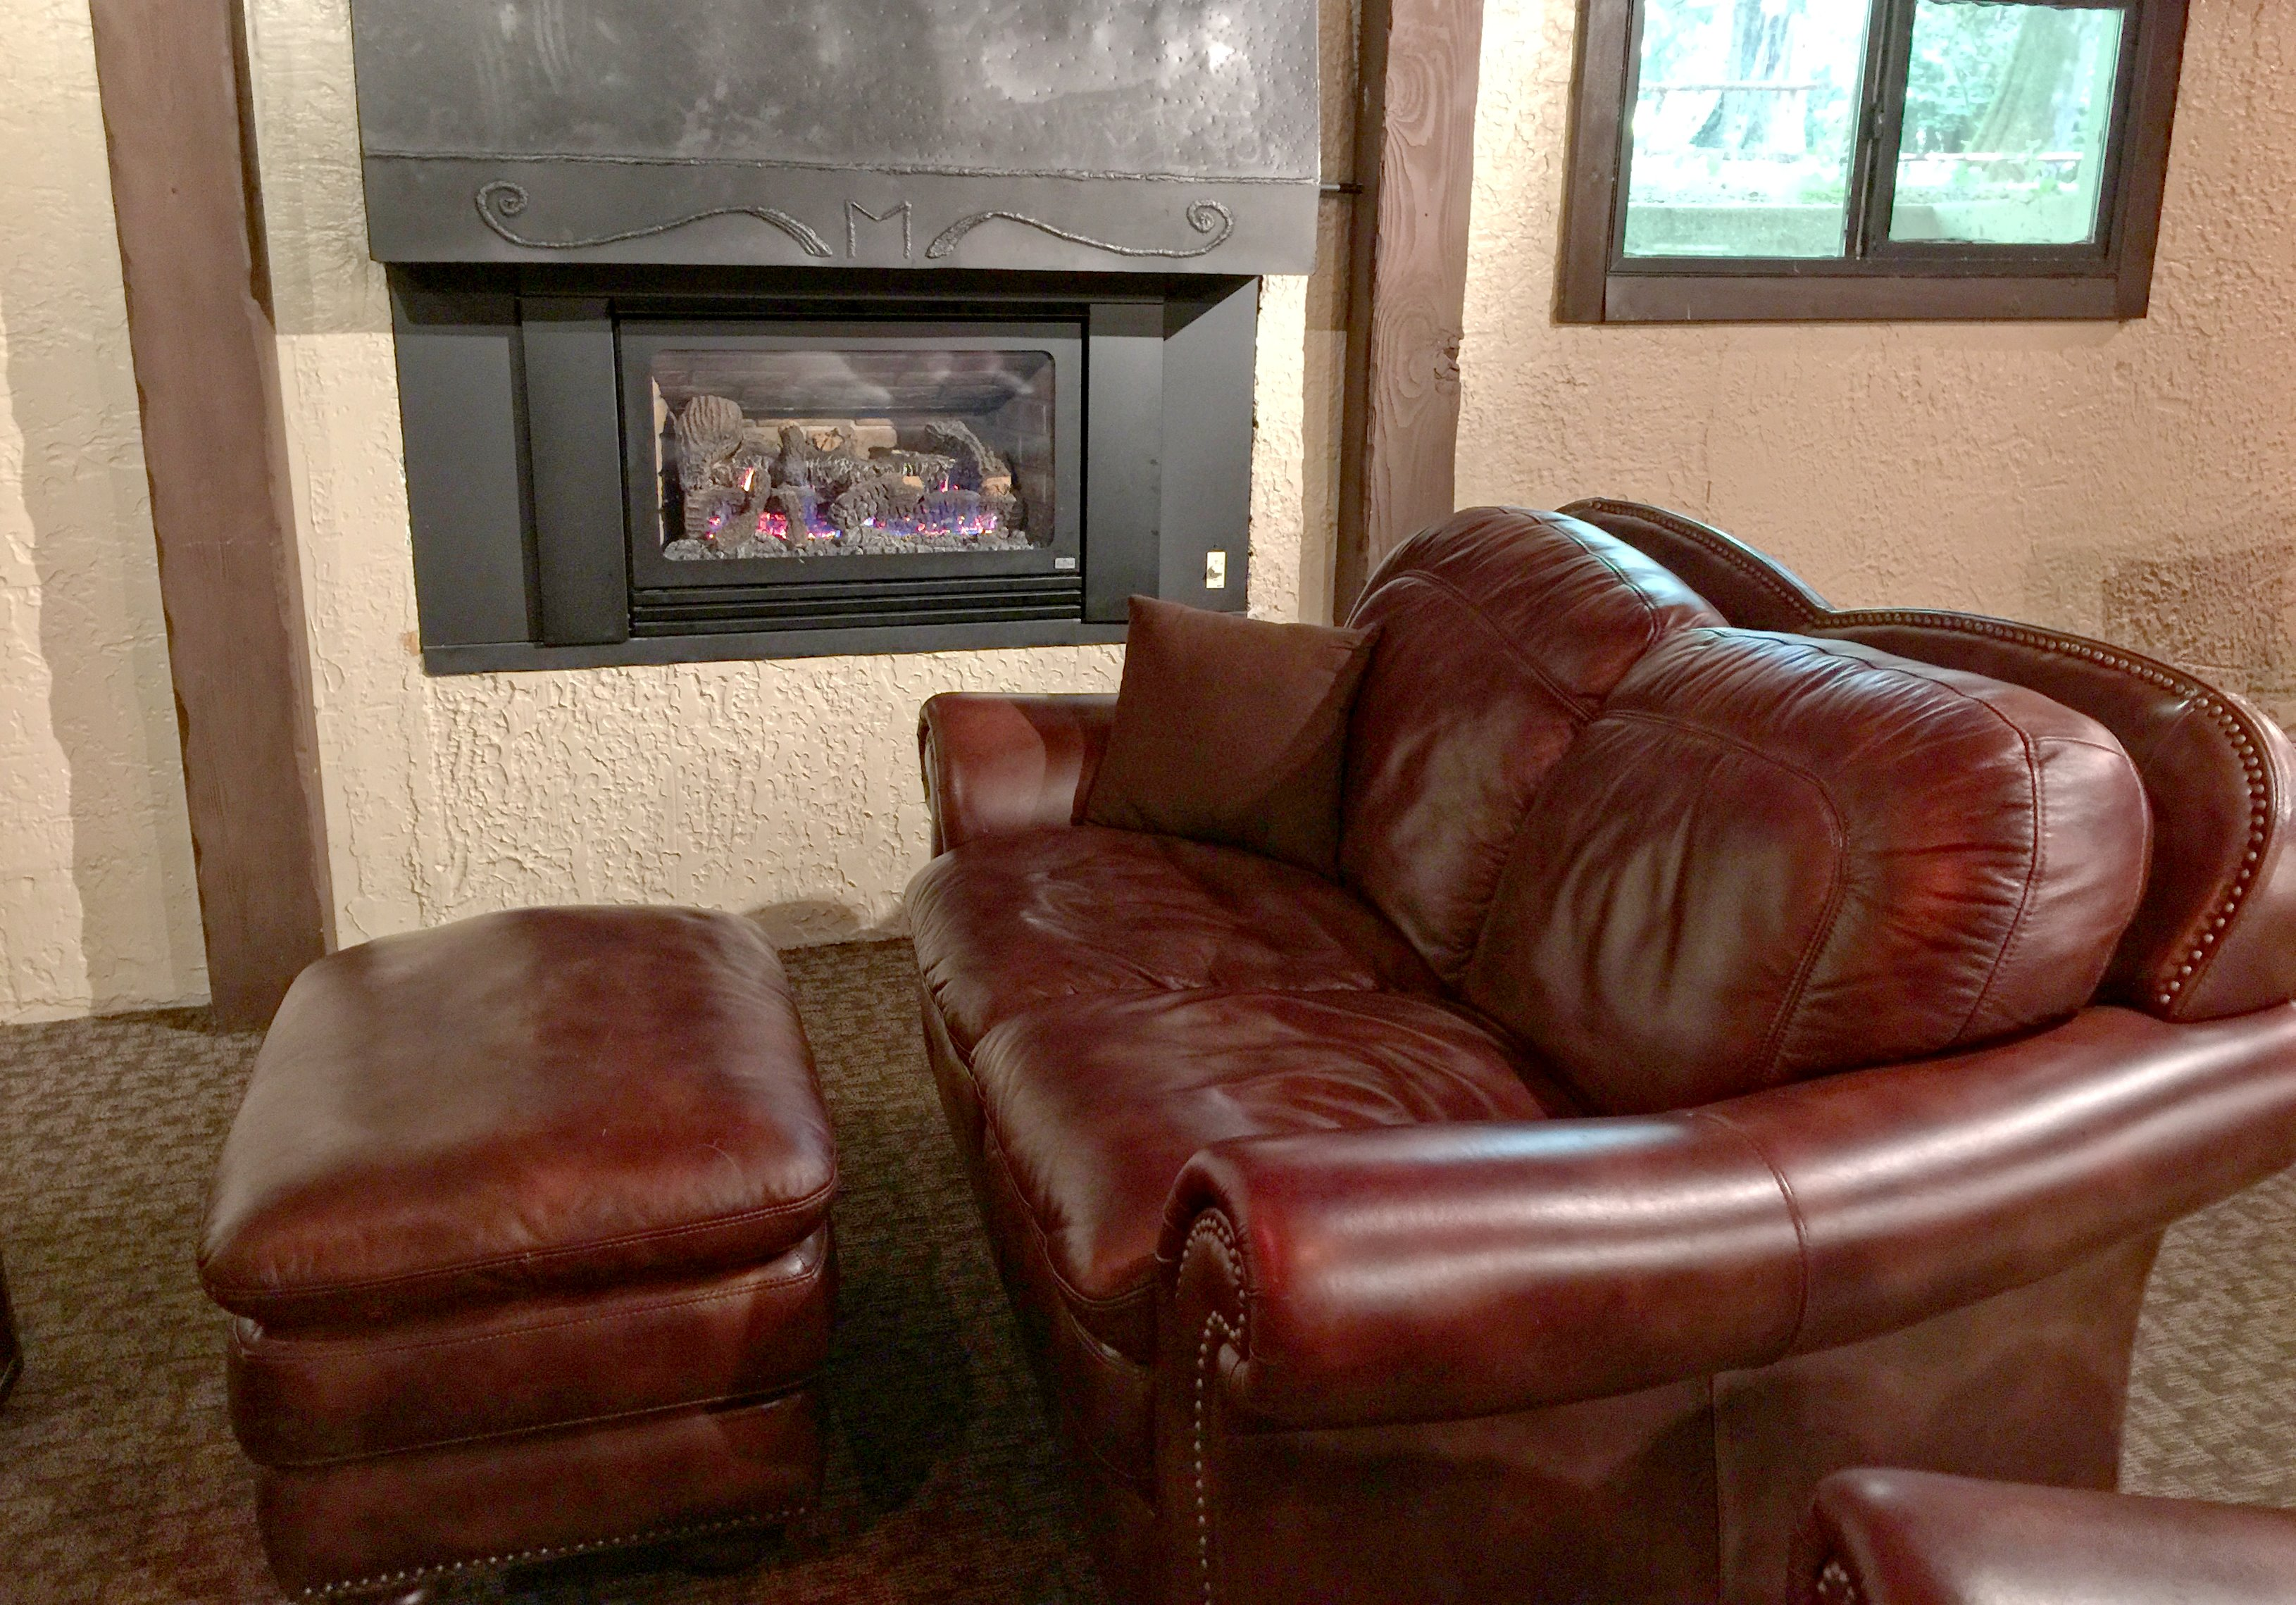 Snowline Lodge Entertainment Room - located in the lower level of the building